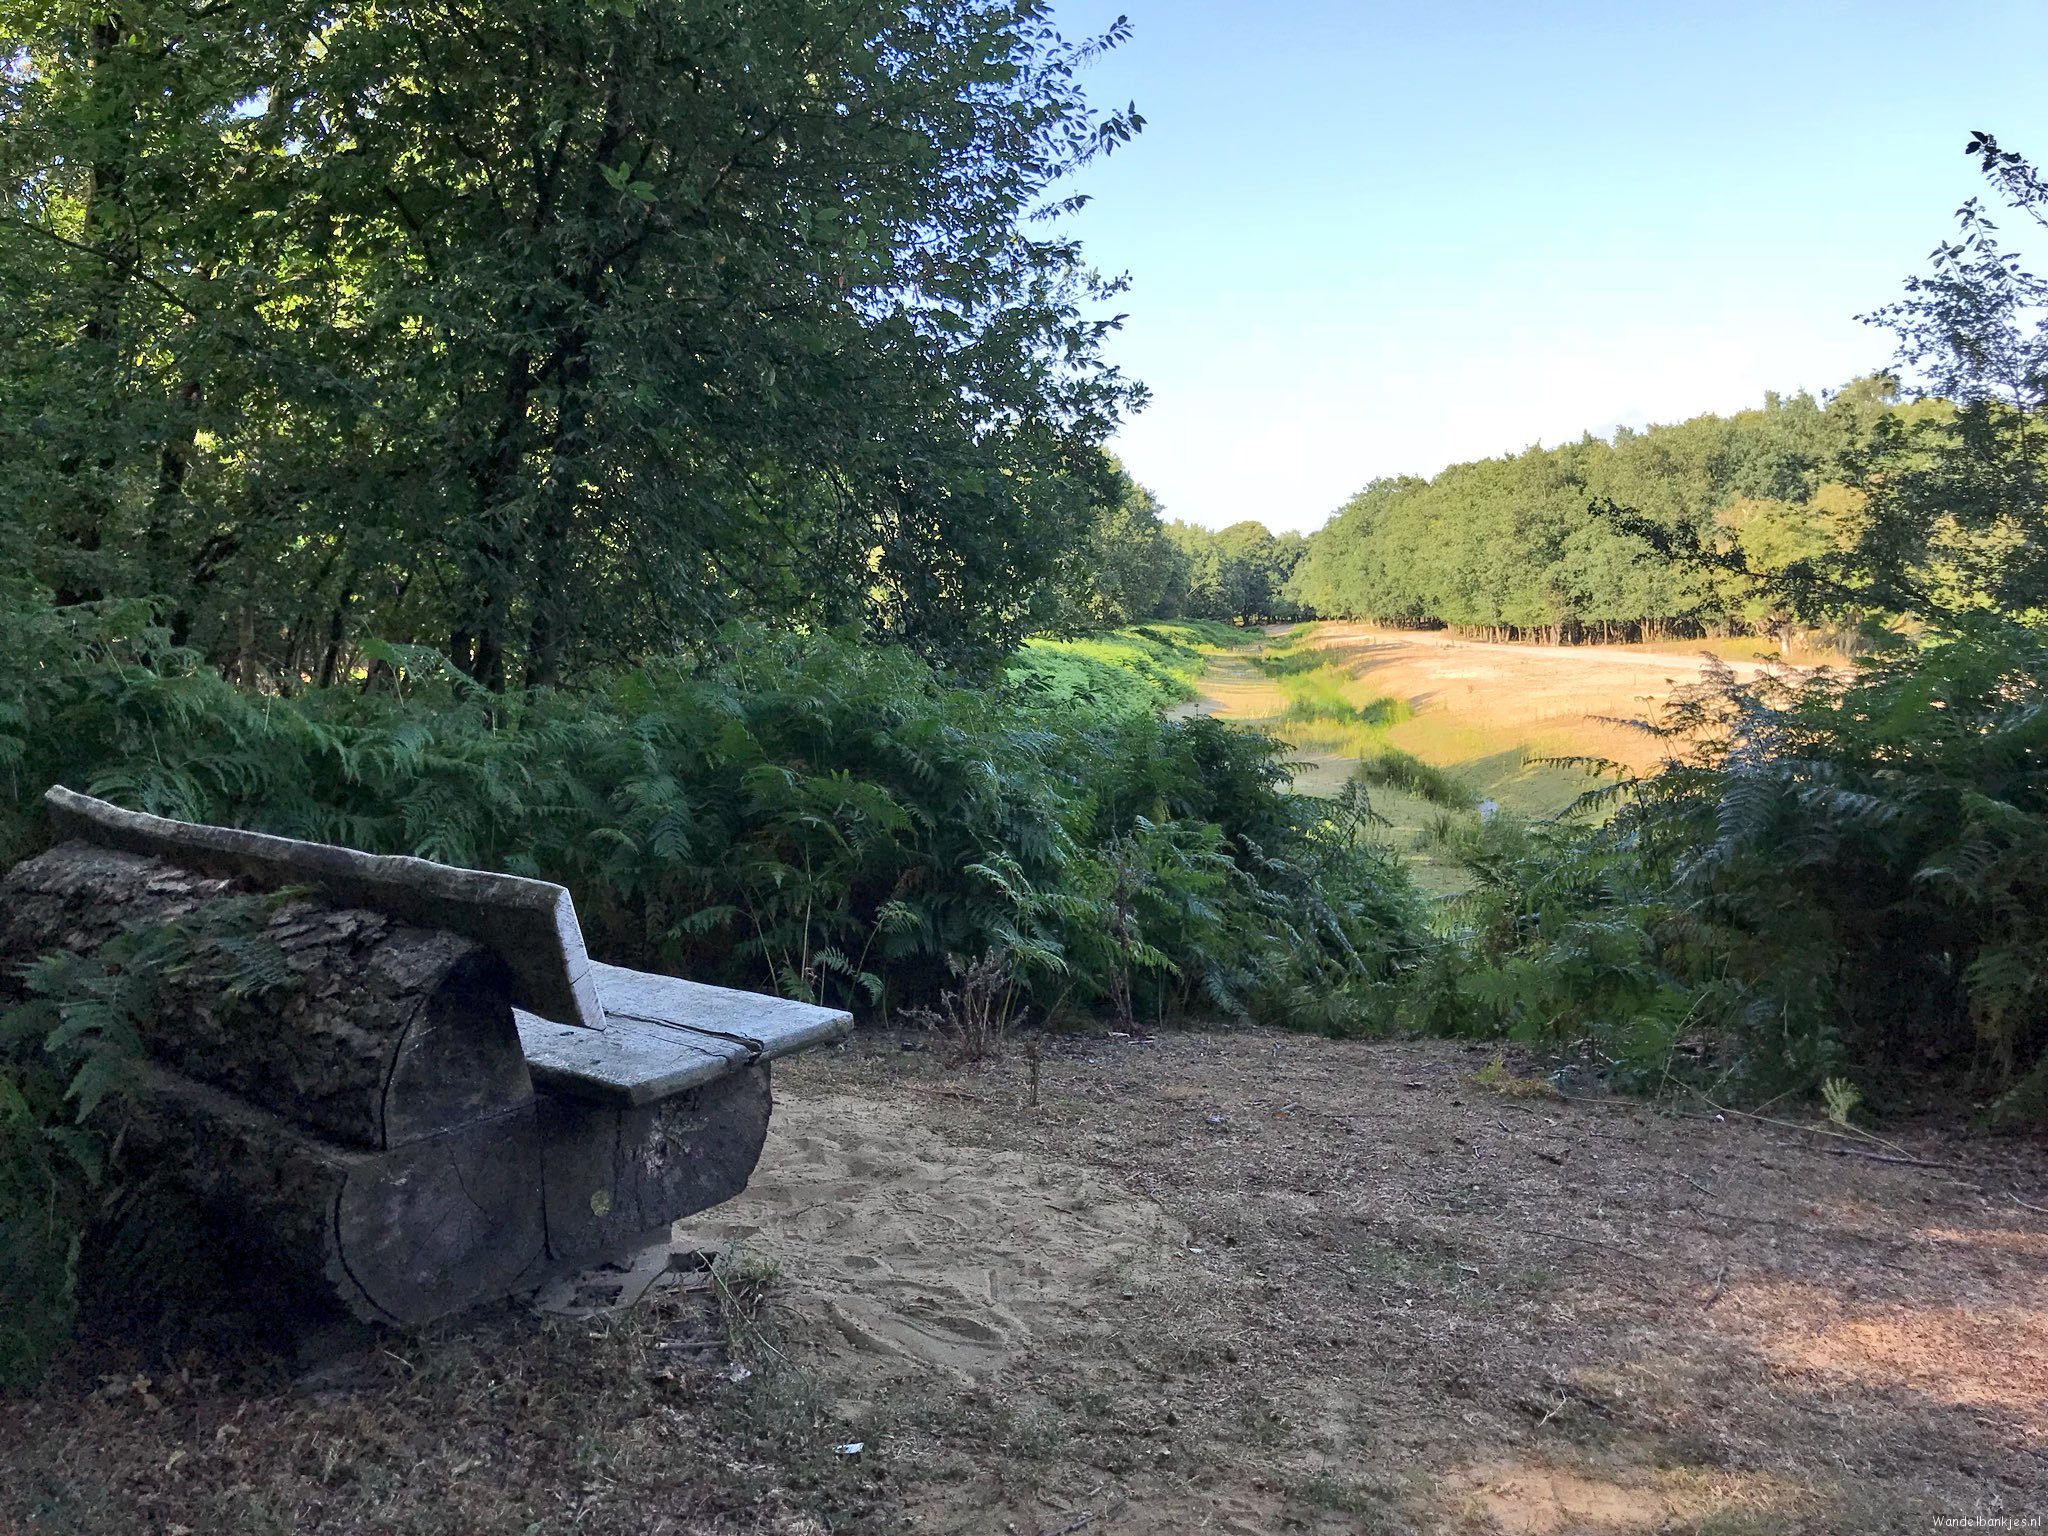 rt-farm-lane-walk-bench-with-view-on-the-oosterduinrel-in-the-amsterdam-waterleidingduinen-wandelbankjes-awd-duinen-https-t-co